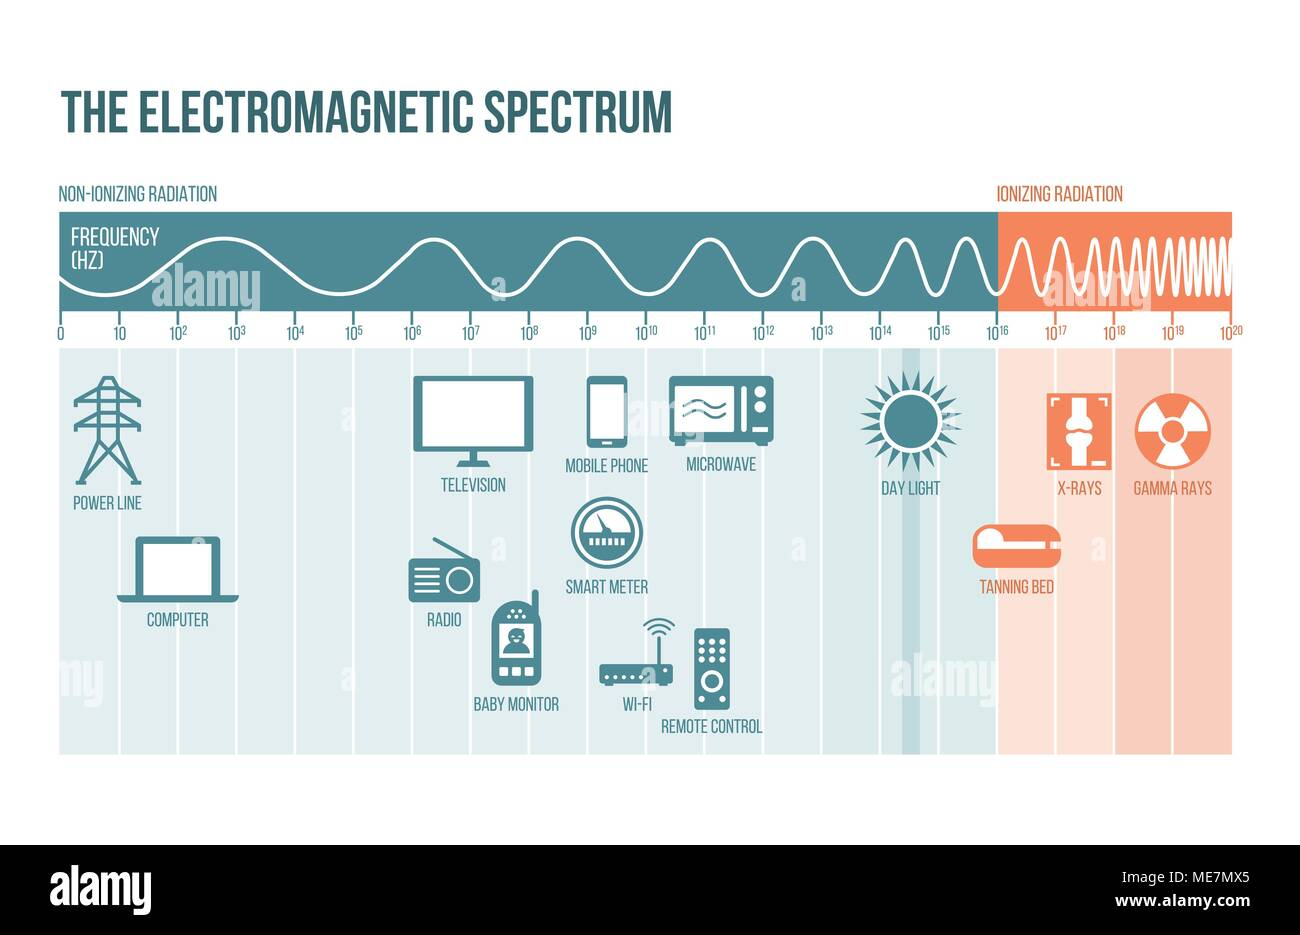 The electromagnetic spectrum diagram with frequencies, waves and examples - Stock Vector